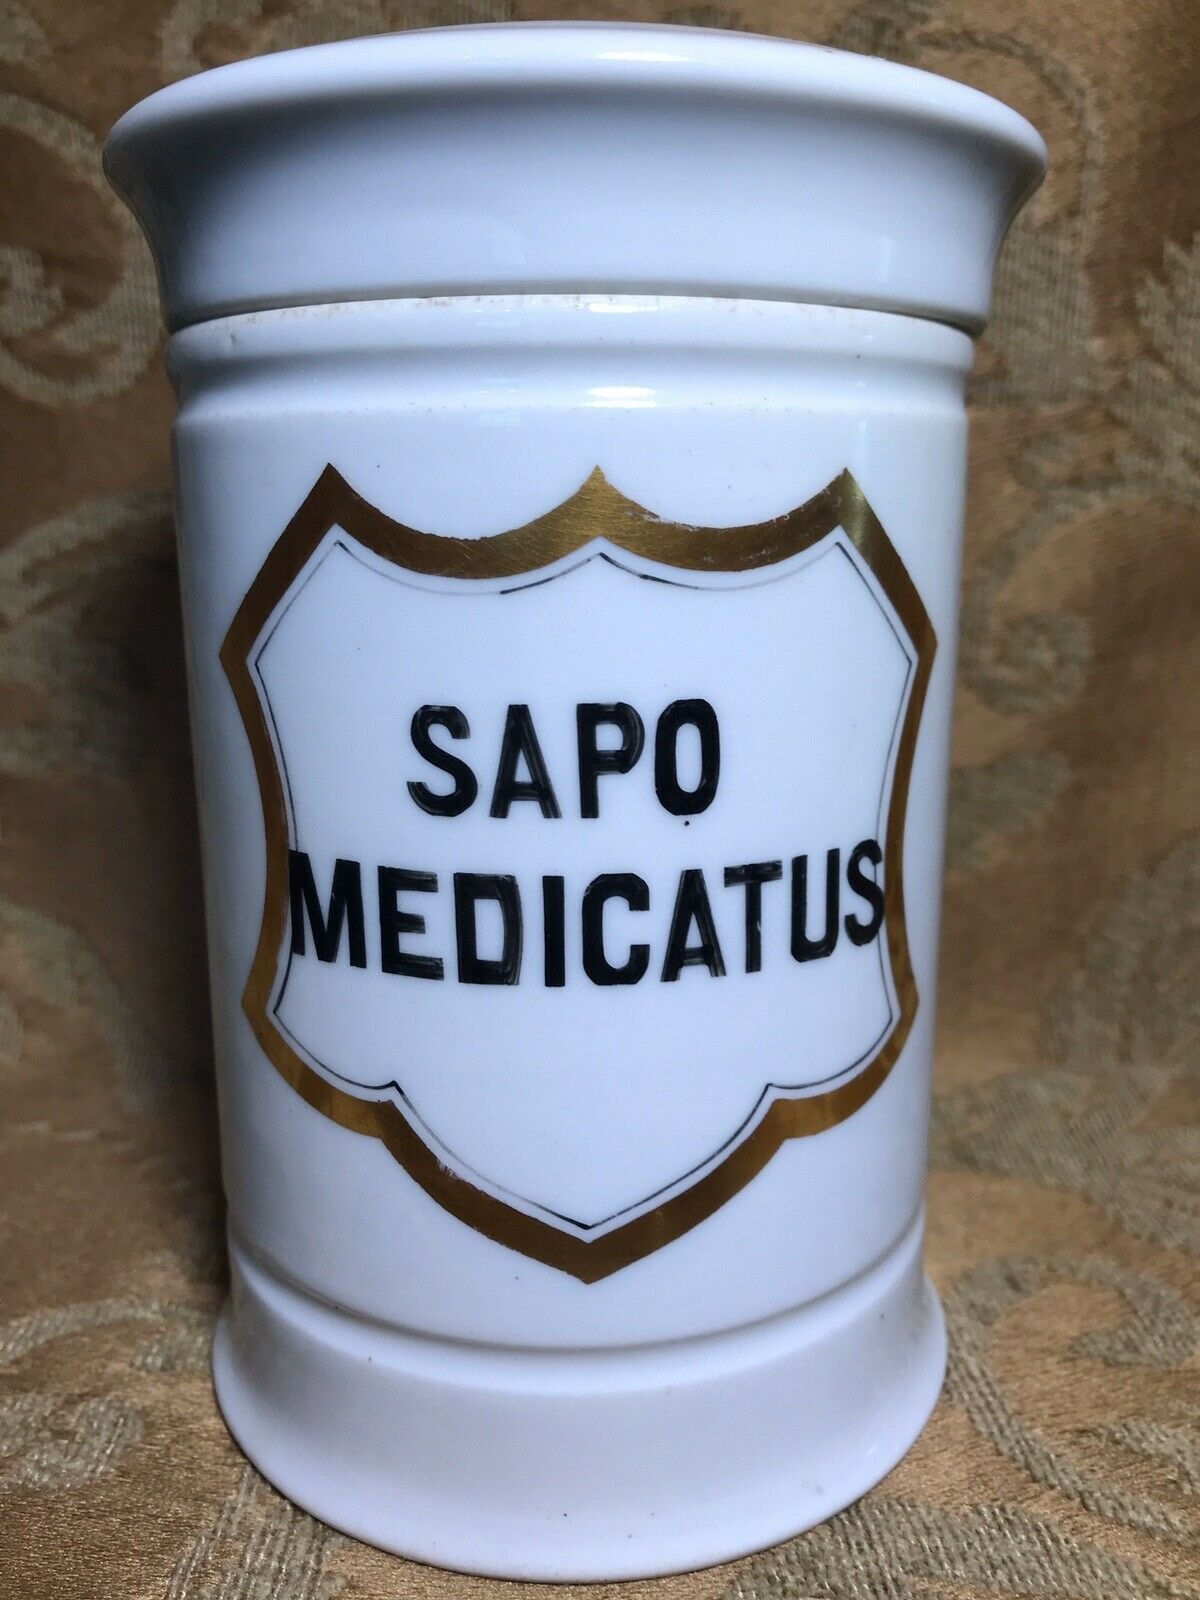 5.5 GERMAN Apothecary Porcelain Ointment Jar W/ Lid Label SAPO MEDICATUS  - $35.00